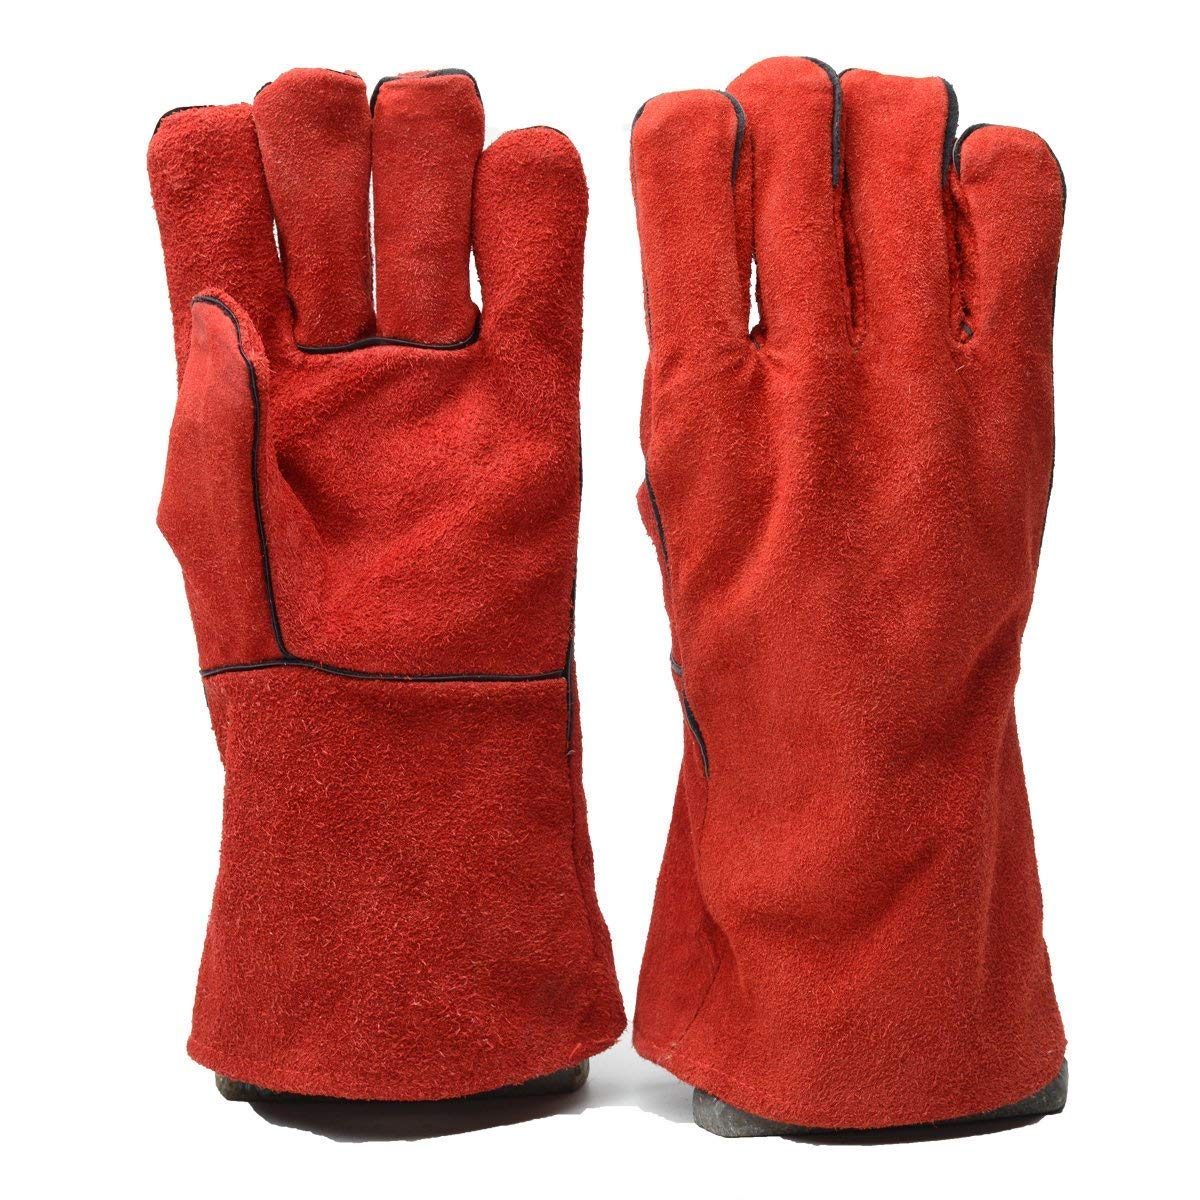 Safety Shop Leather Welding Gloves, Heavy Duty Heat Resistant, Cotton Liner for Mig and Tig Welder, Fireplace/Stove/Oven/Grill/BBQ, 14inch, Red, XL